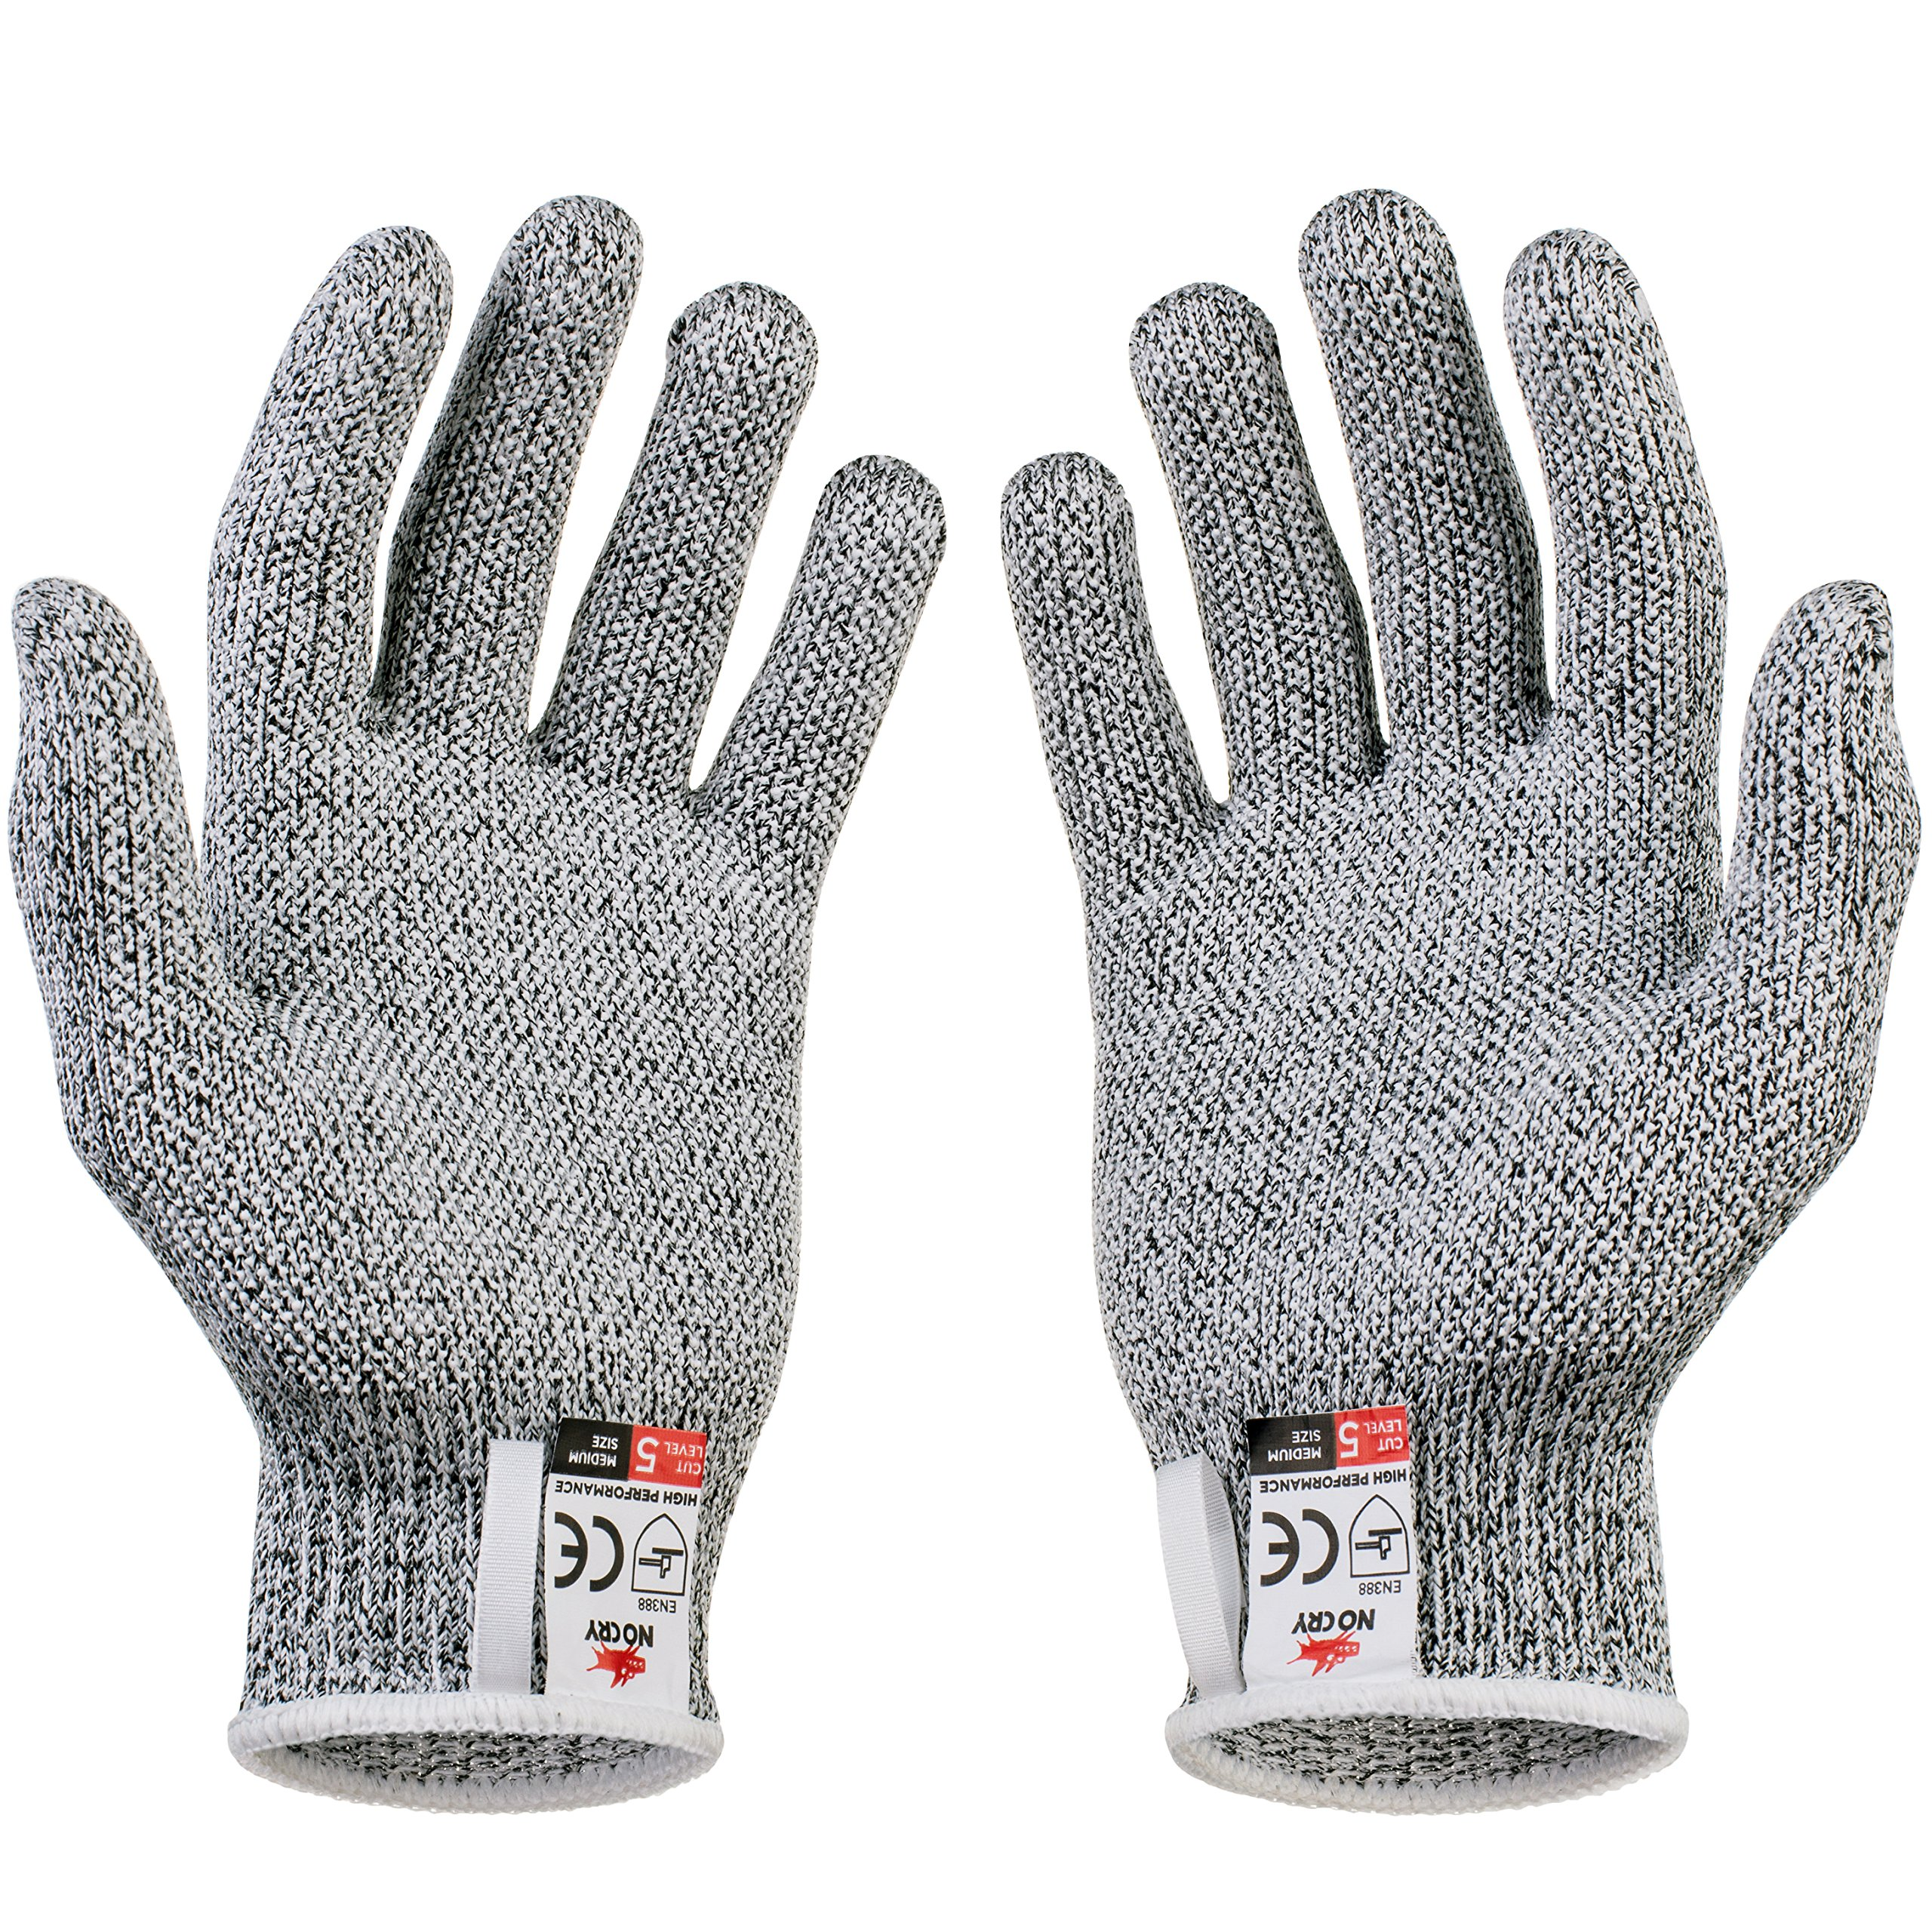 NoCry Cut Resistant Gloves with Grip Dots - High Performance Level 5 Protection, Food Grade. Size Large, Free Ebook Included! by NoCry (Image #8)